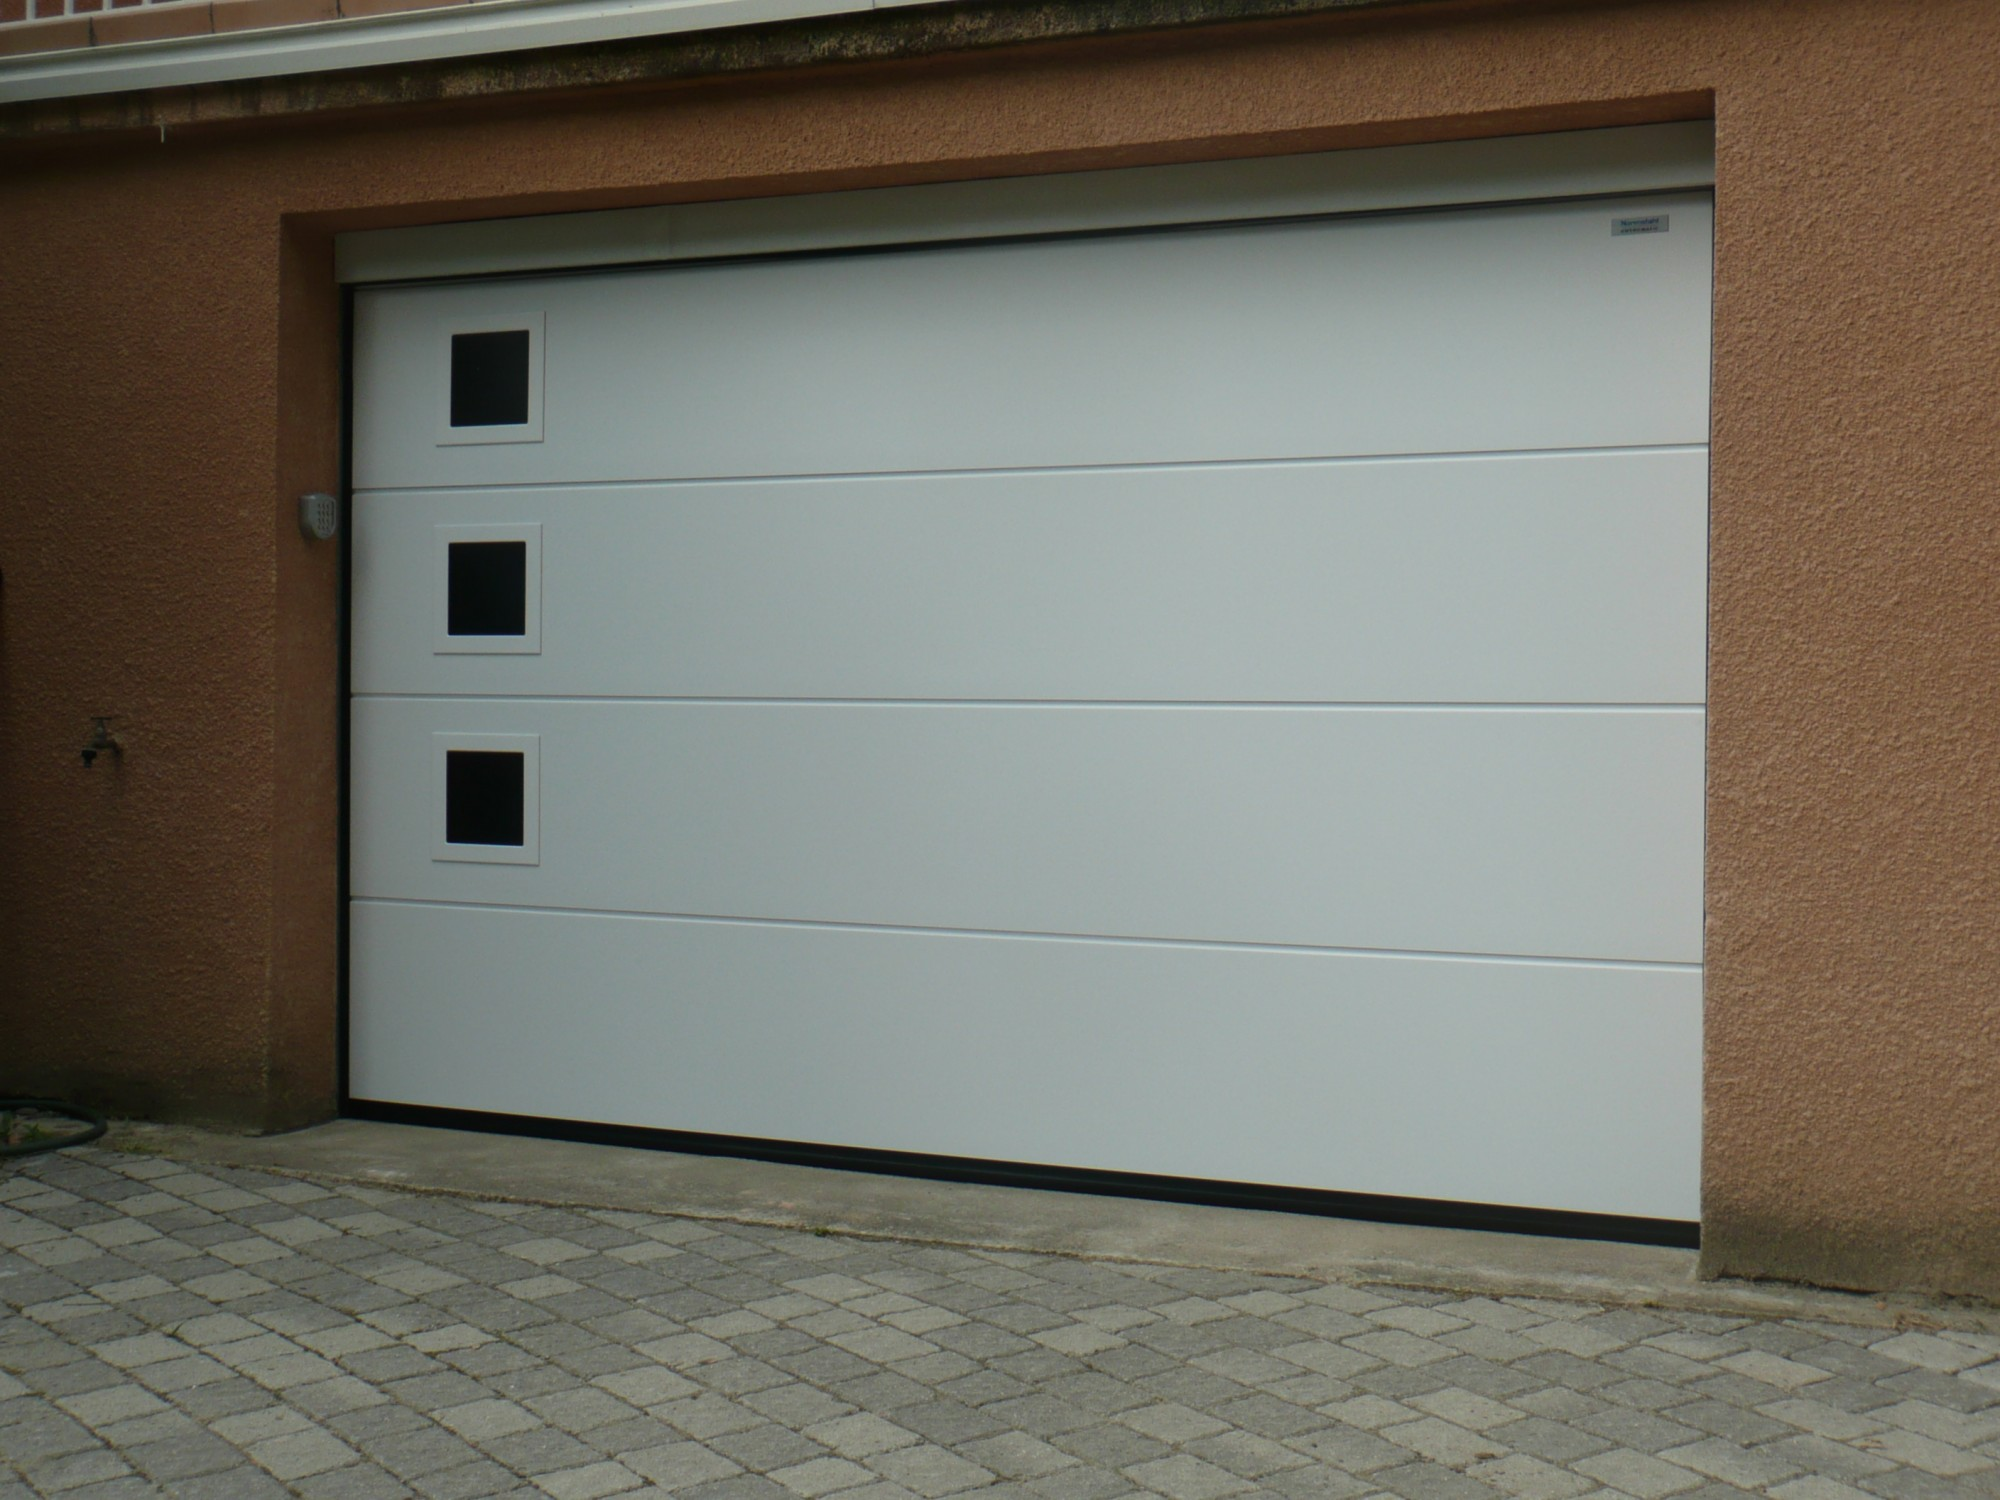 Porte De Garage Sectionnelle Sur Mesure Hormann Of Porte De Garage Sectionnelle Sur Mesure Trevoux Acces